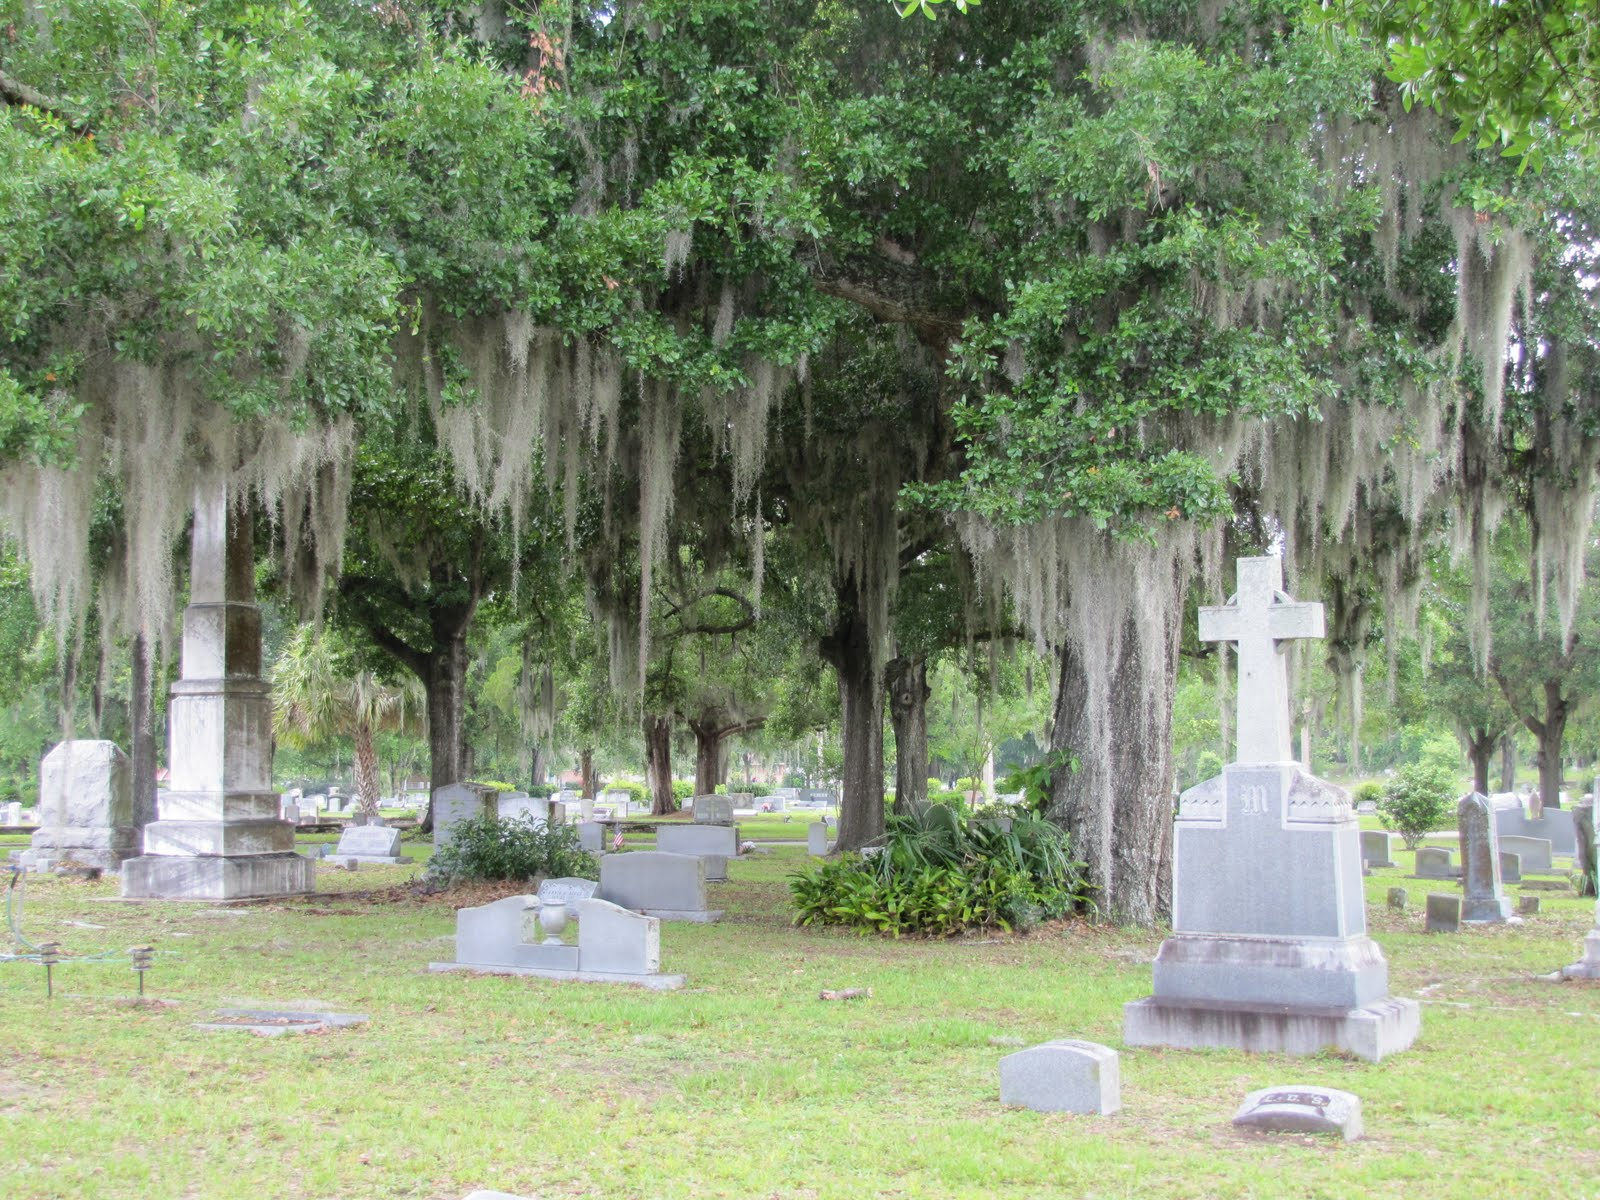 Some of the graves at Greenwood Cemetery.